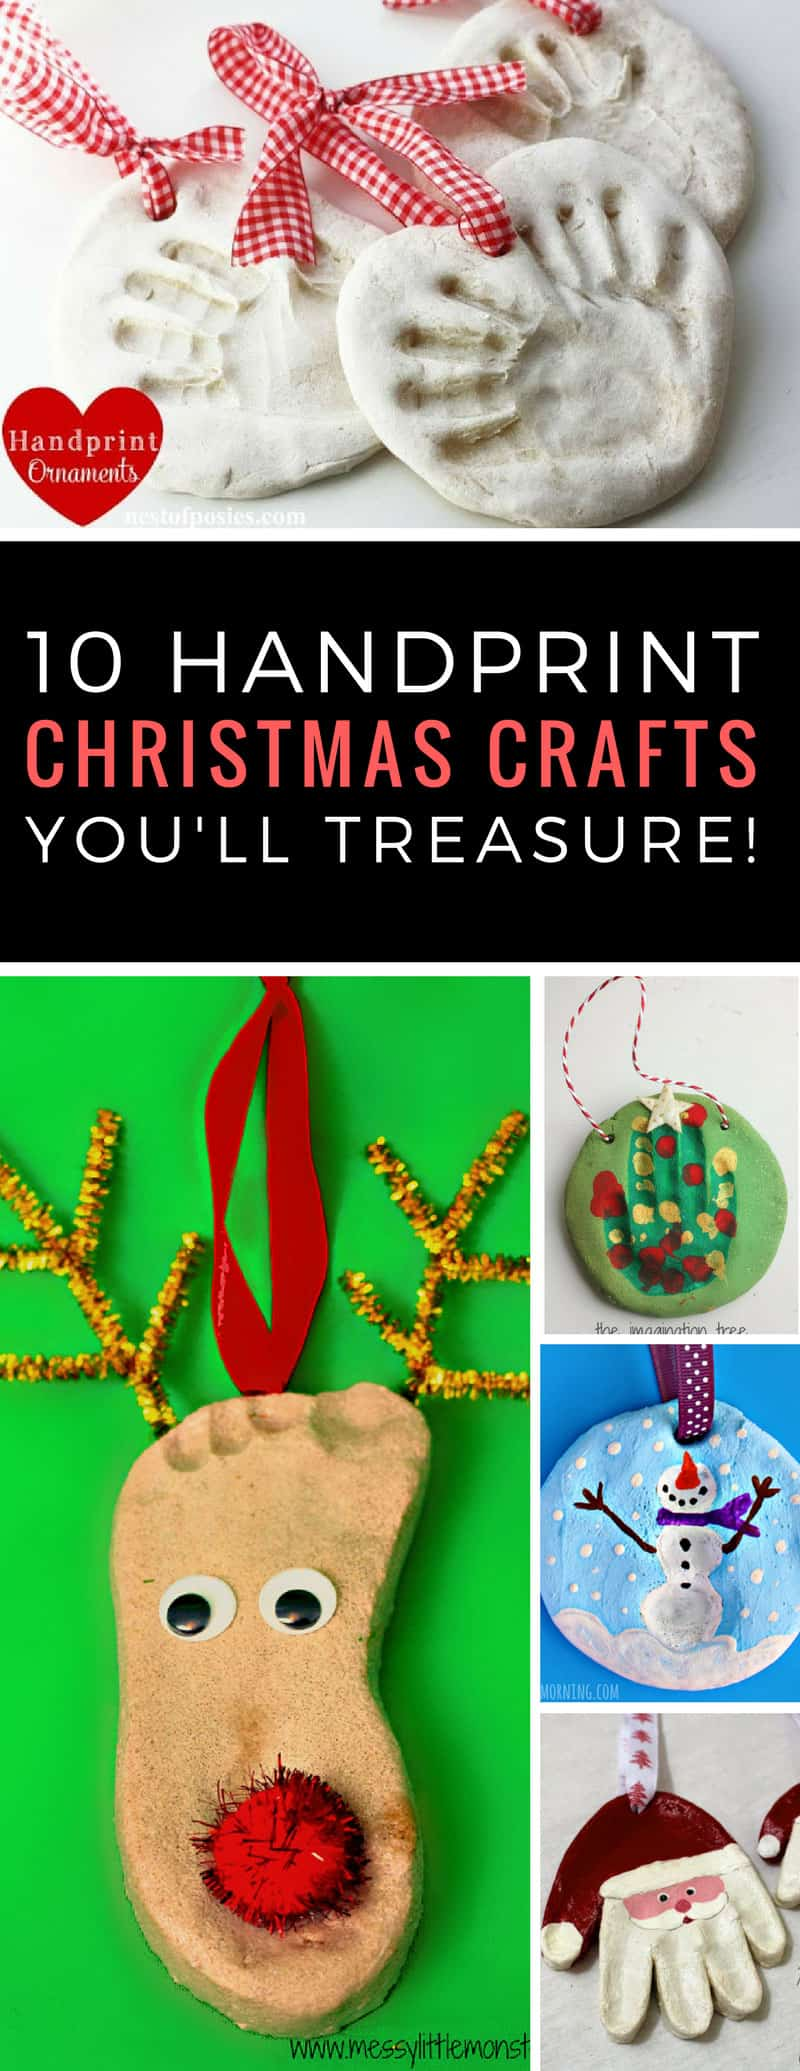 These handprint and footprint Christmas ornaments are so adorable - the kids will love making them and Granny will treasure them! Thanks for sharing!